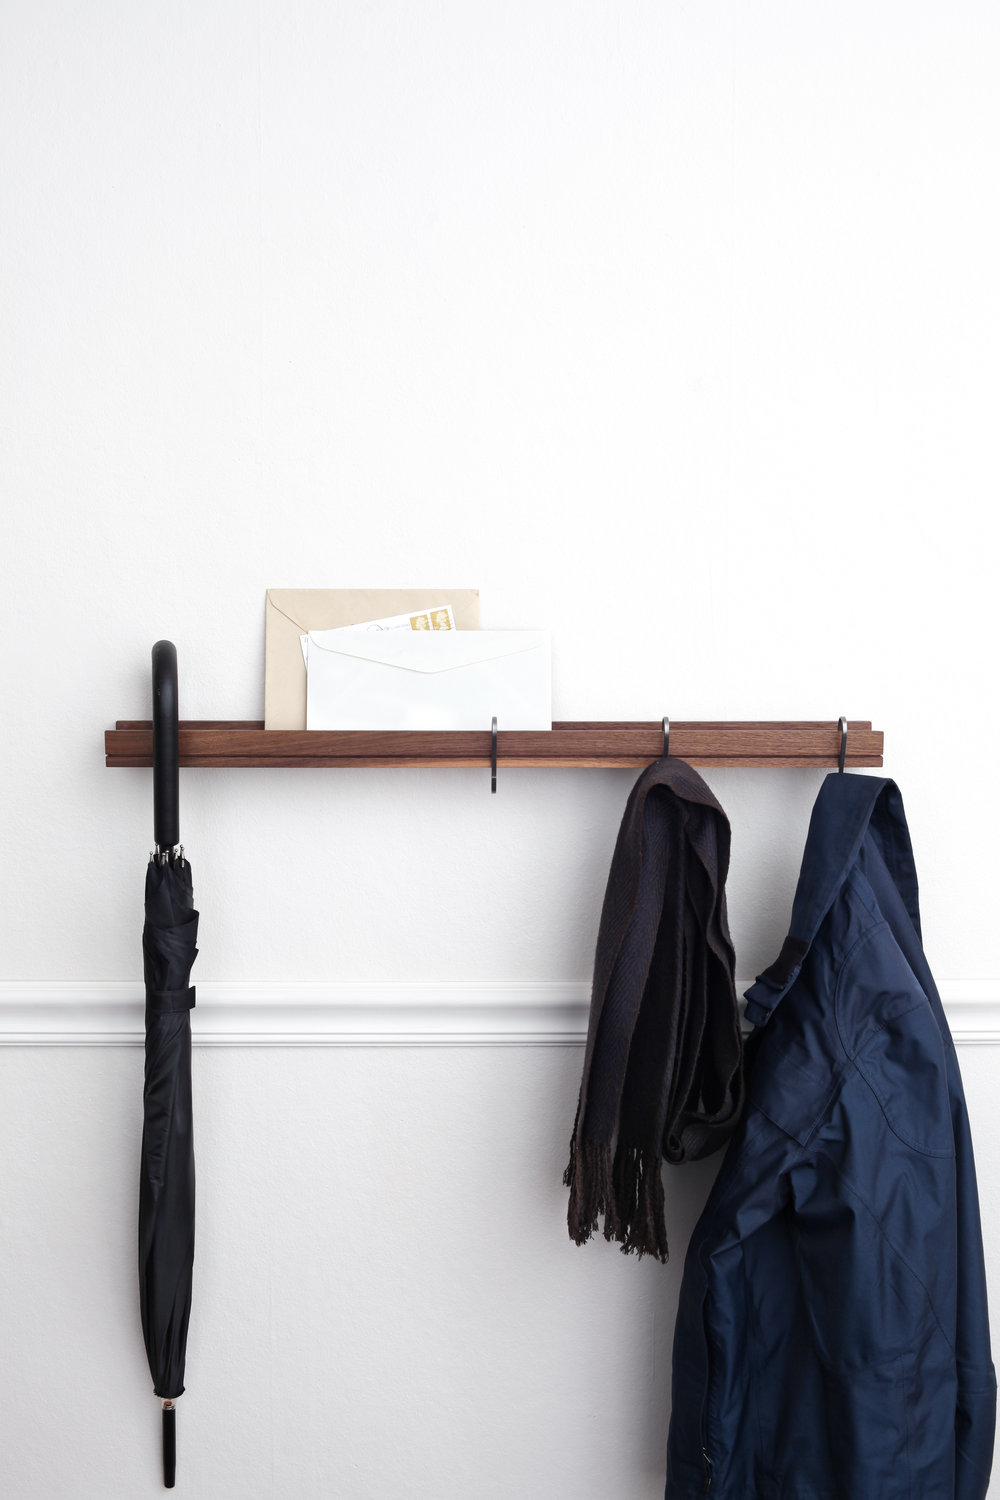 SINGULAR cantilever wall shelf used as a coatrack entry or foyer shelf